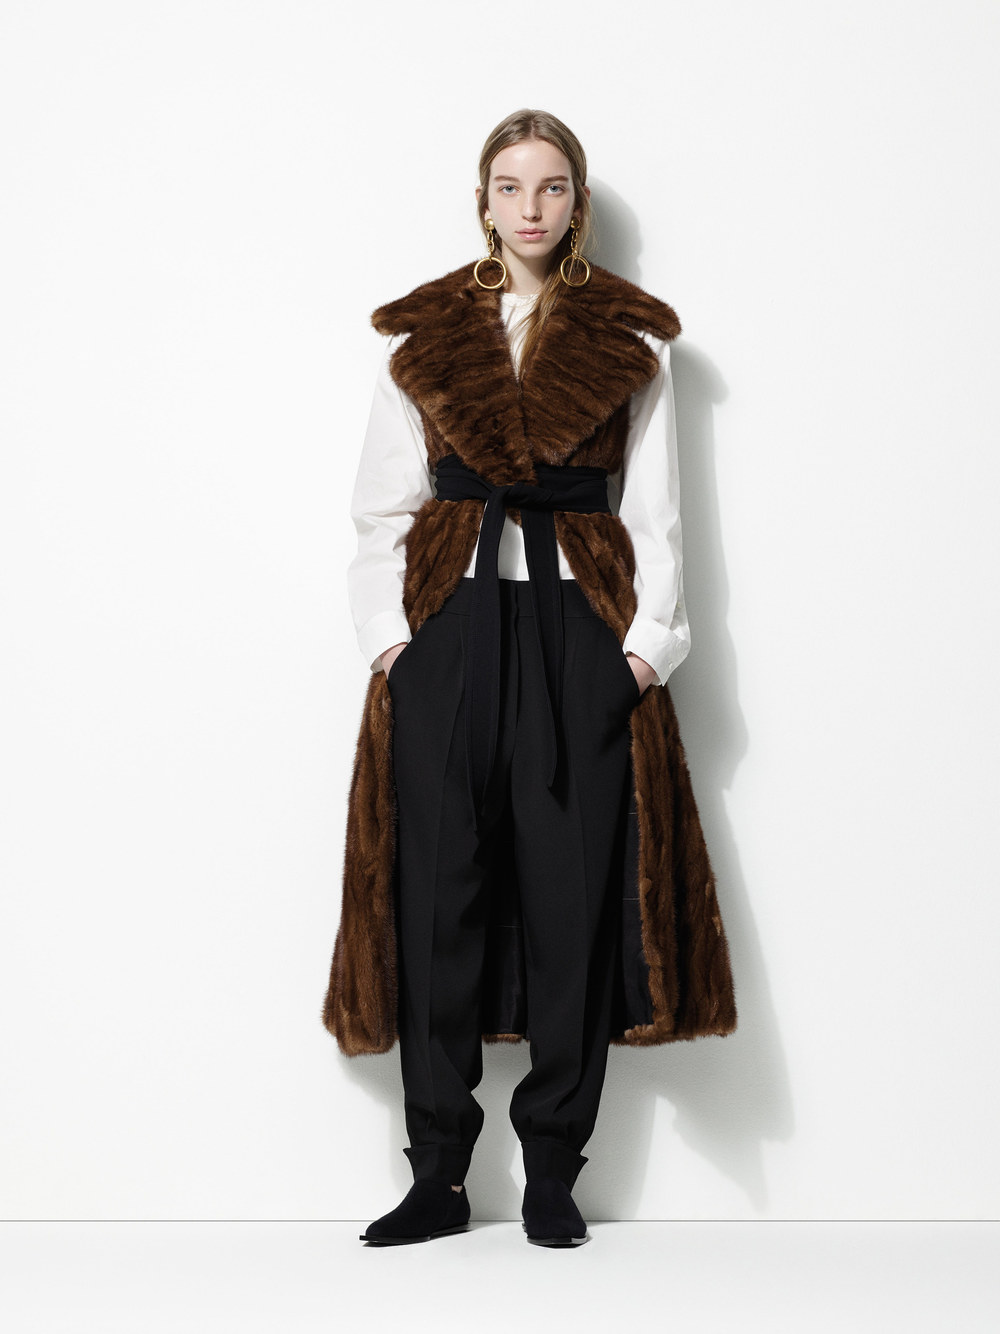 marni-pre-fall-2016-lookbook-03.jpg